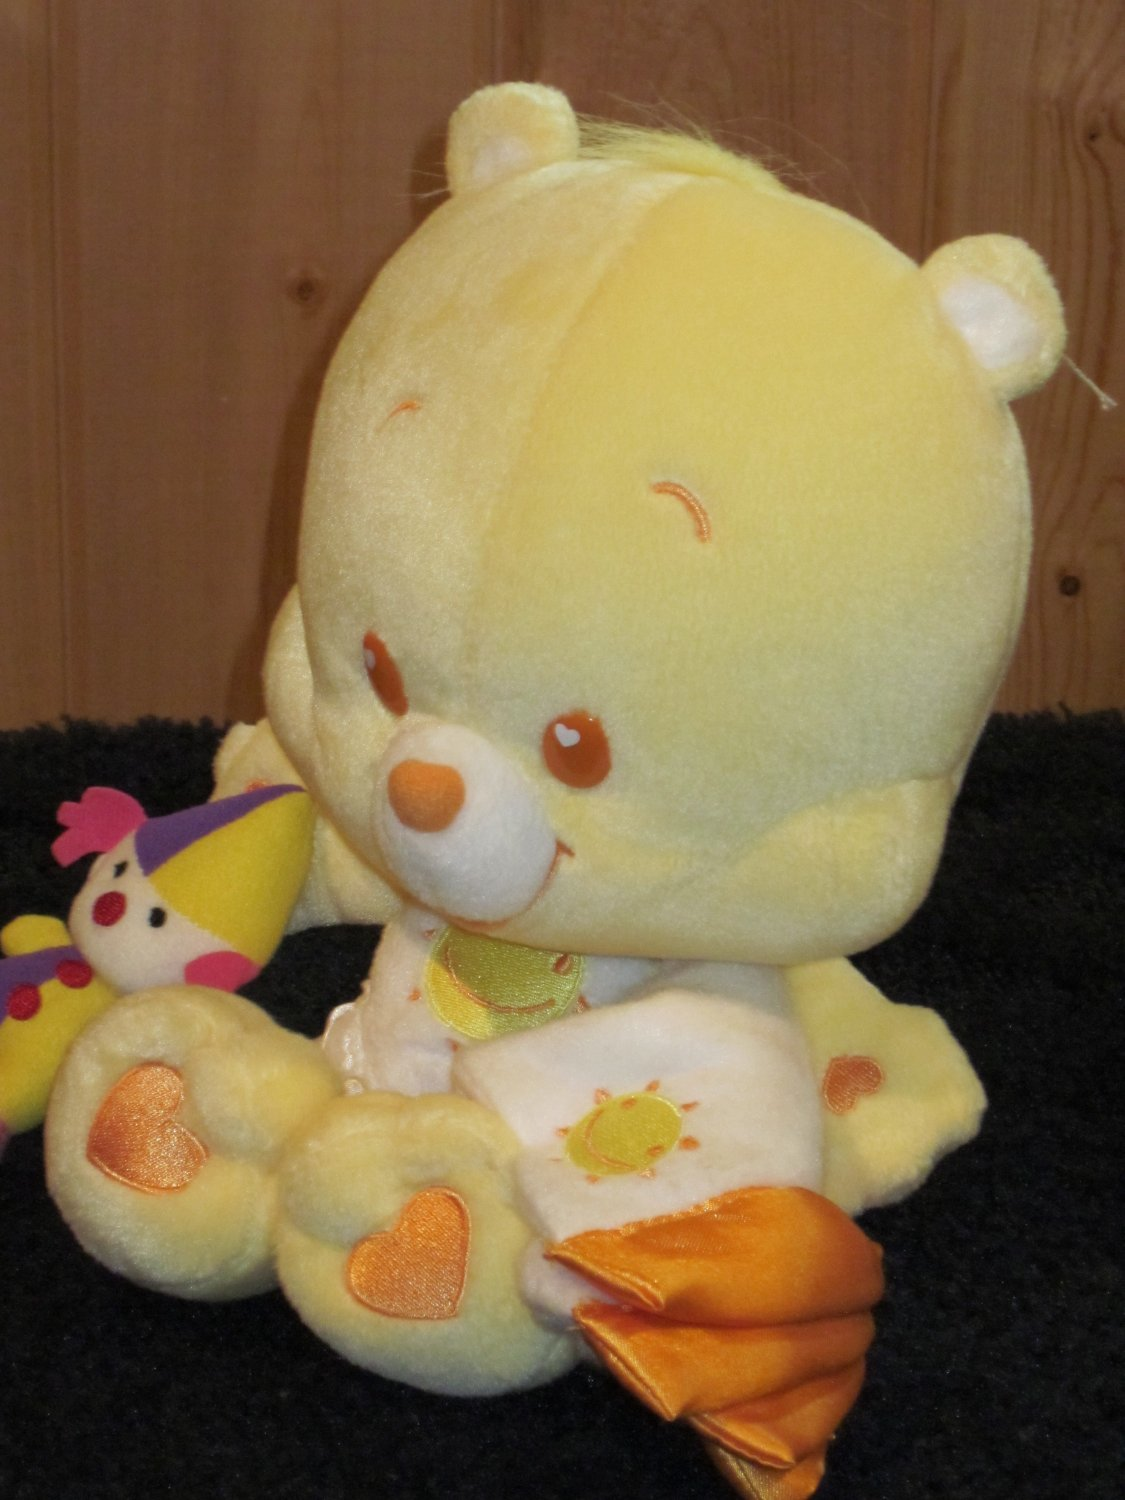 Care Bear Cubs Funshine with security blanket and Plush Clown Yellow CareBear